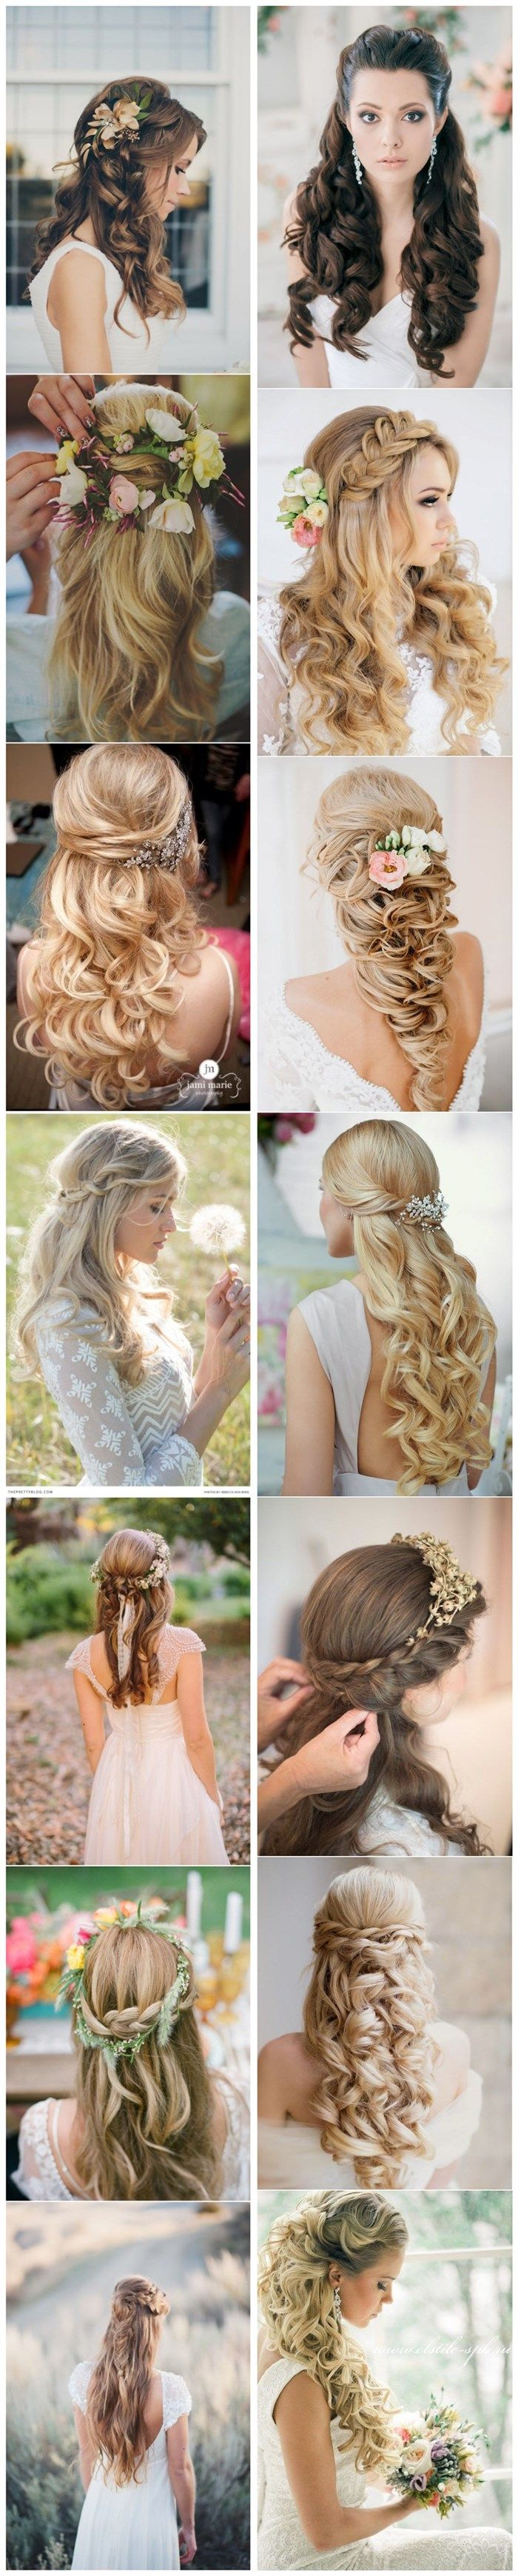 Curly wavy braided wedding hairstyles // Pinned by Dauphine Magazine x Castlefield - Curated by Castlefield Bridal & Branding Atelier and delivering the ultimate experience for the haute couture connoisseur! Visit www.dauphinemagazine.com, @dauphinemagazine on Instagram, and @dauphinemag on Pinterest • Visit Castlefield: www.castlefield.co and @ castlefieldco on Instagram / Luxury, fashion, weddings, bridal style, décor, travel, art, design, jewelry, photography, beauty, interiors…